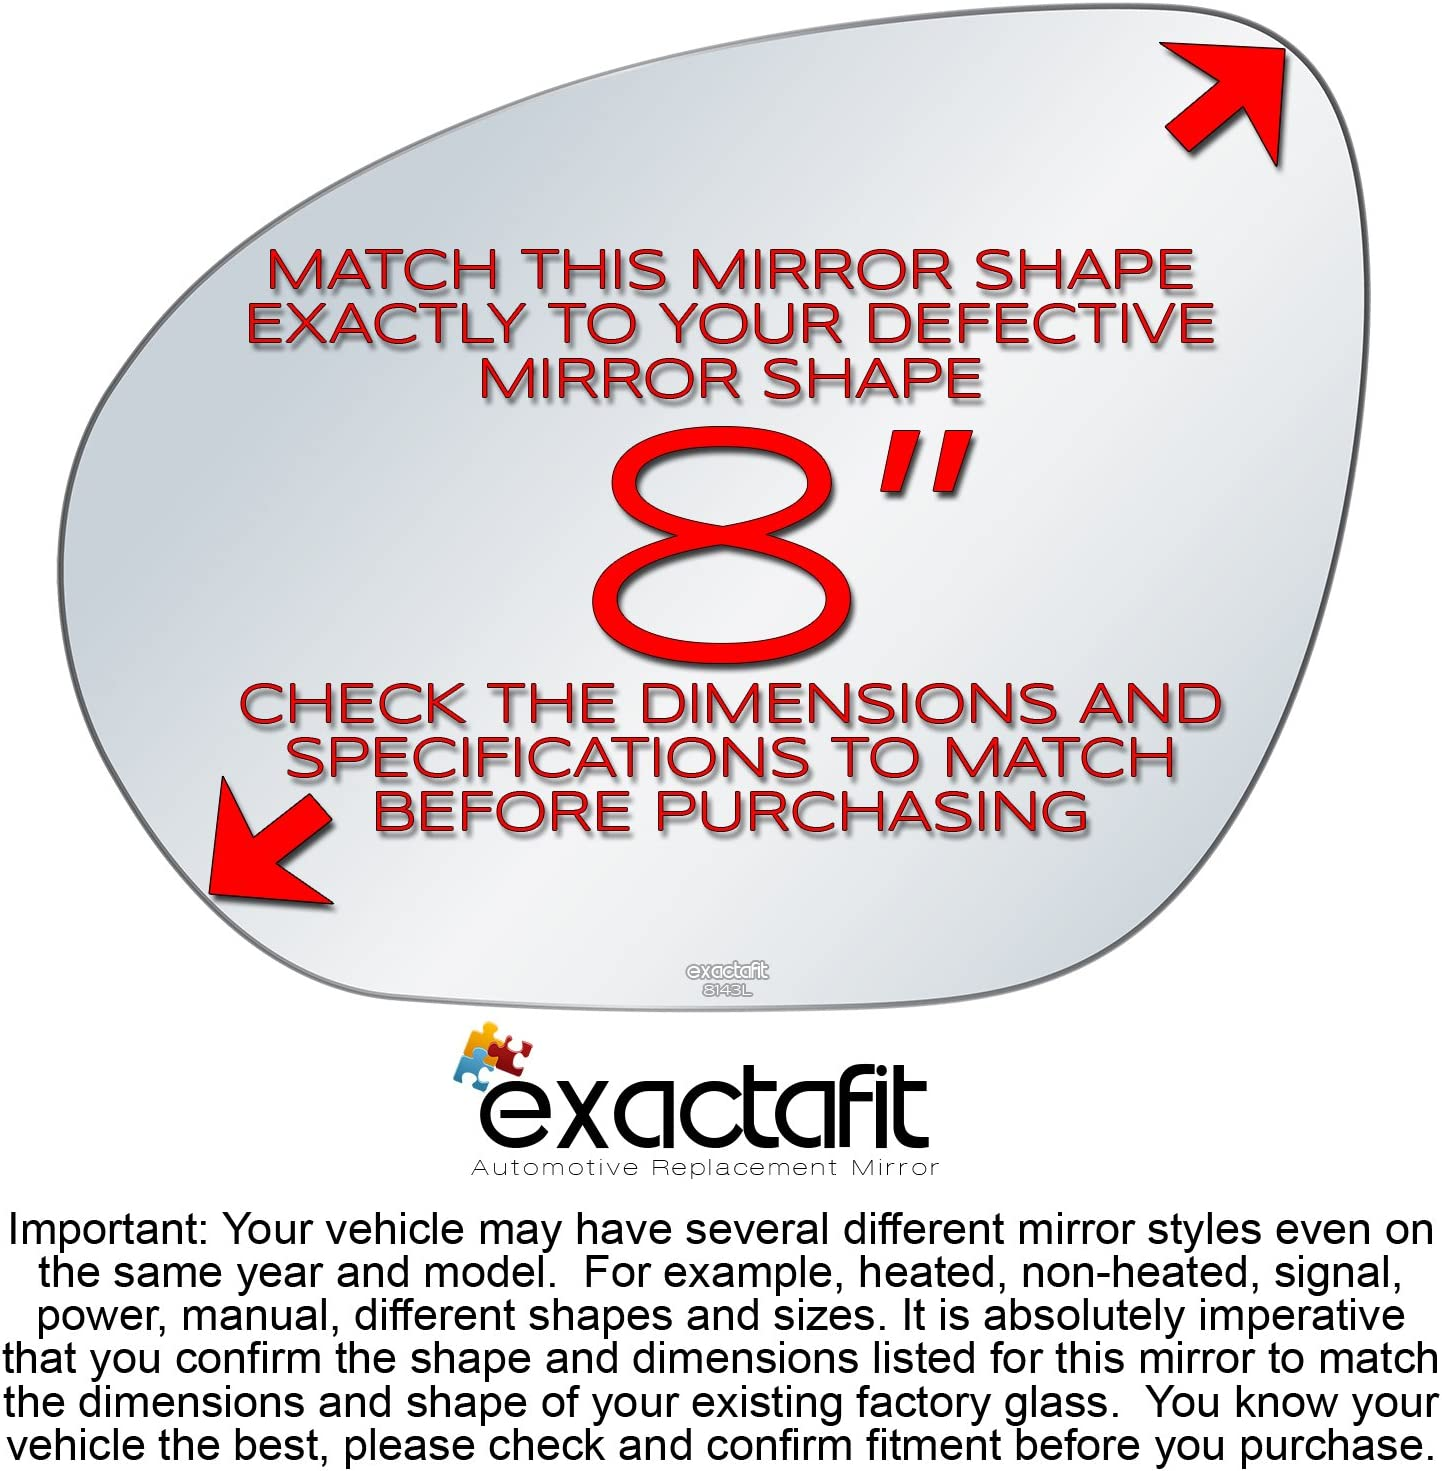 Driver Side Rear View Mirror Glass Replacement Left Hand Flat Fits 2009 2010 2011 2012 2013 2014 Nissan Cube Juke by exactafit 8143L Adhesive Install